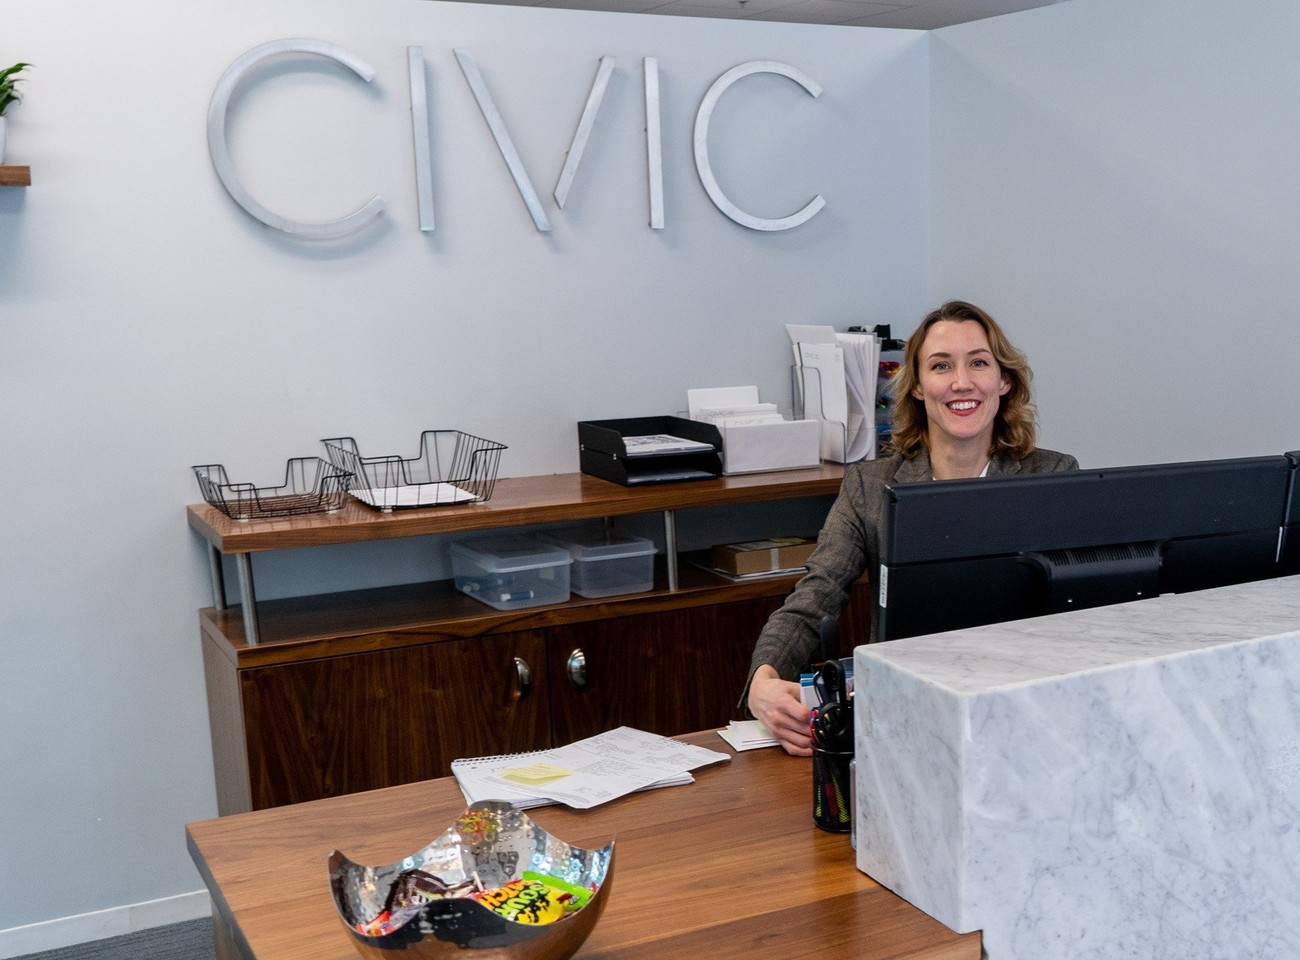 Civic Financial Services Careers